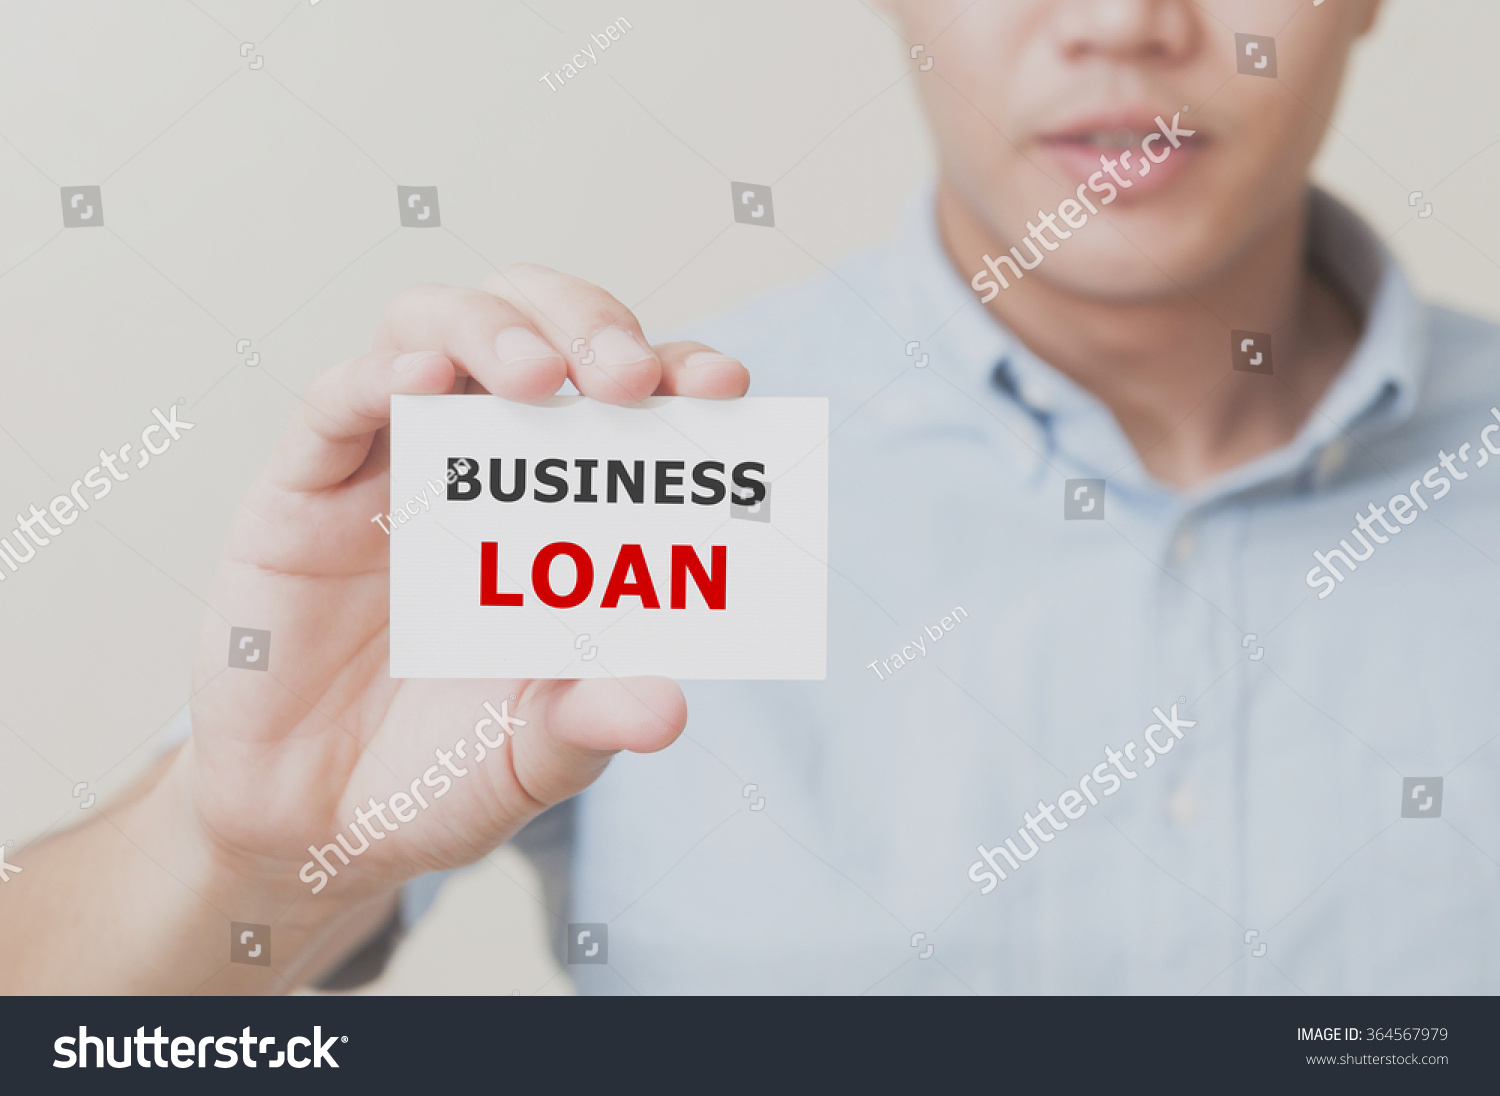 Mans Hand Showing Business Loan On Stock Photo 364567979 ...